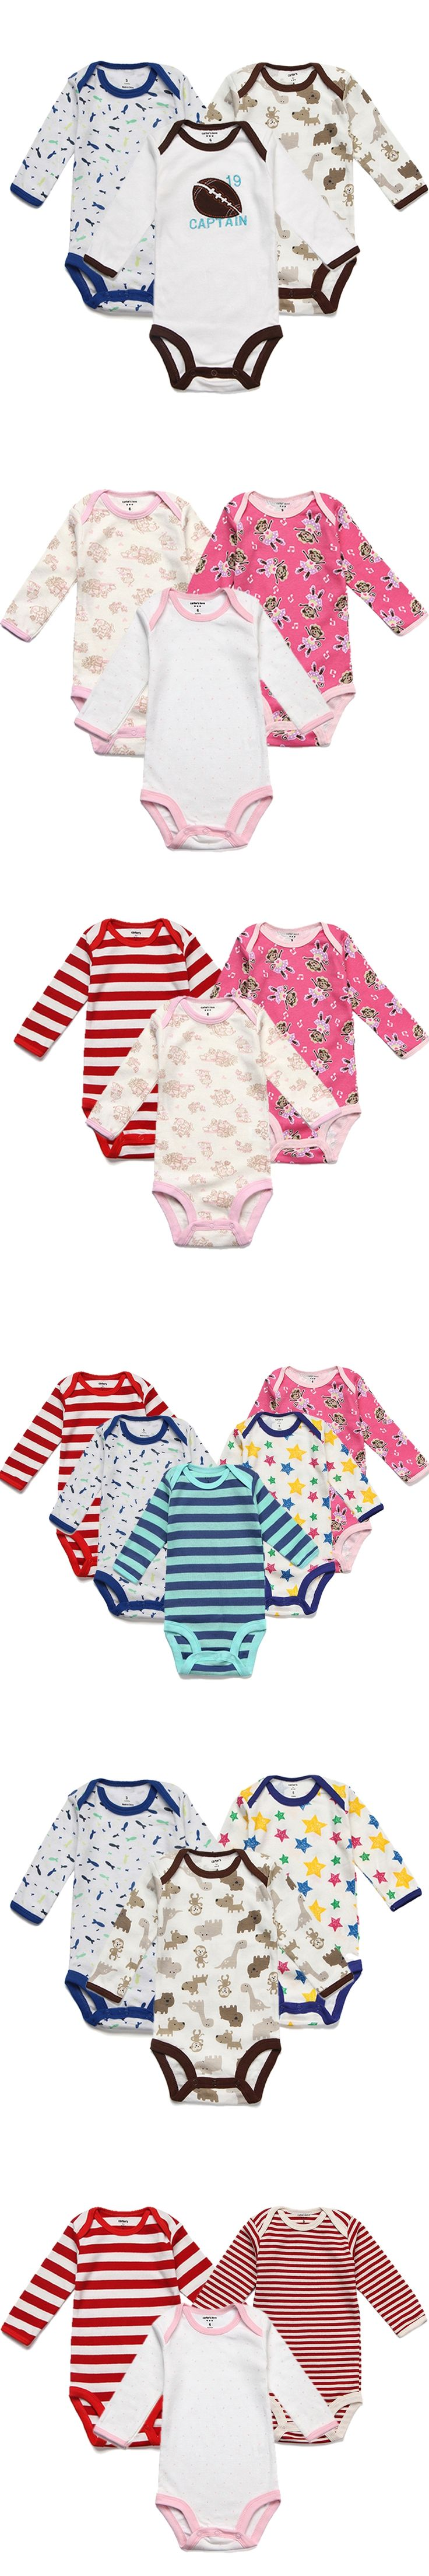 3pcs Lot New Born Clothes Long Sleeves Baby Rompers Infant Costume Bebe Jumpsuits e Piece